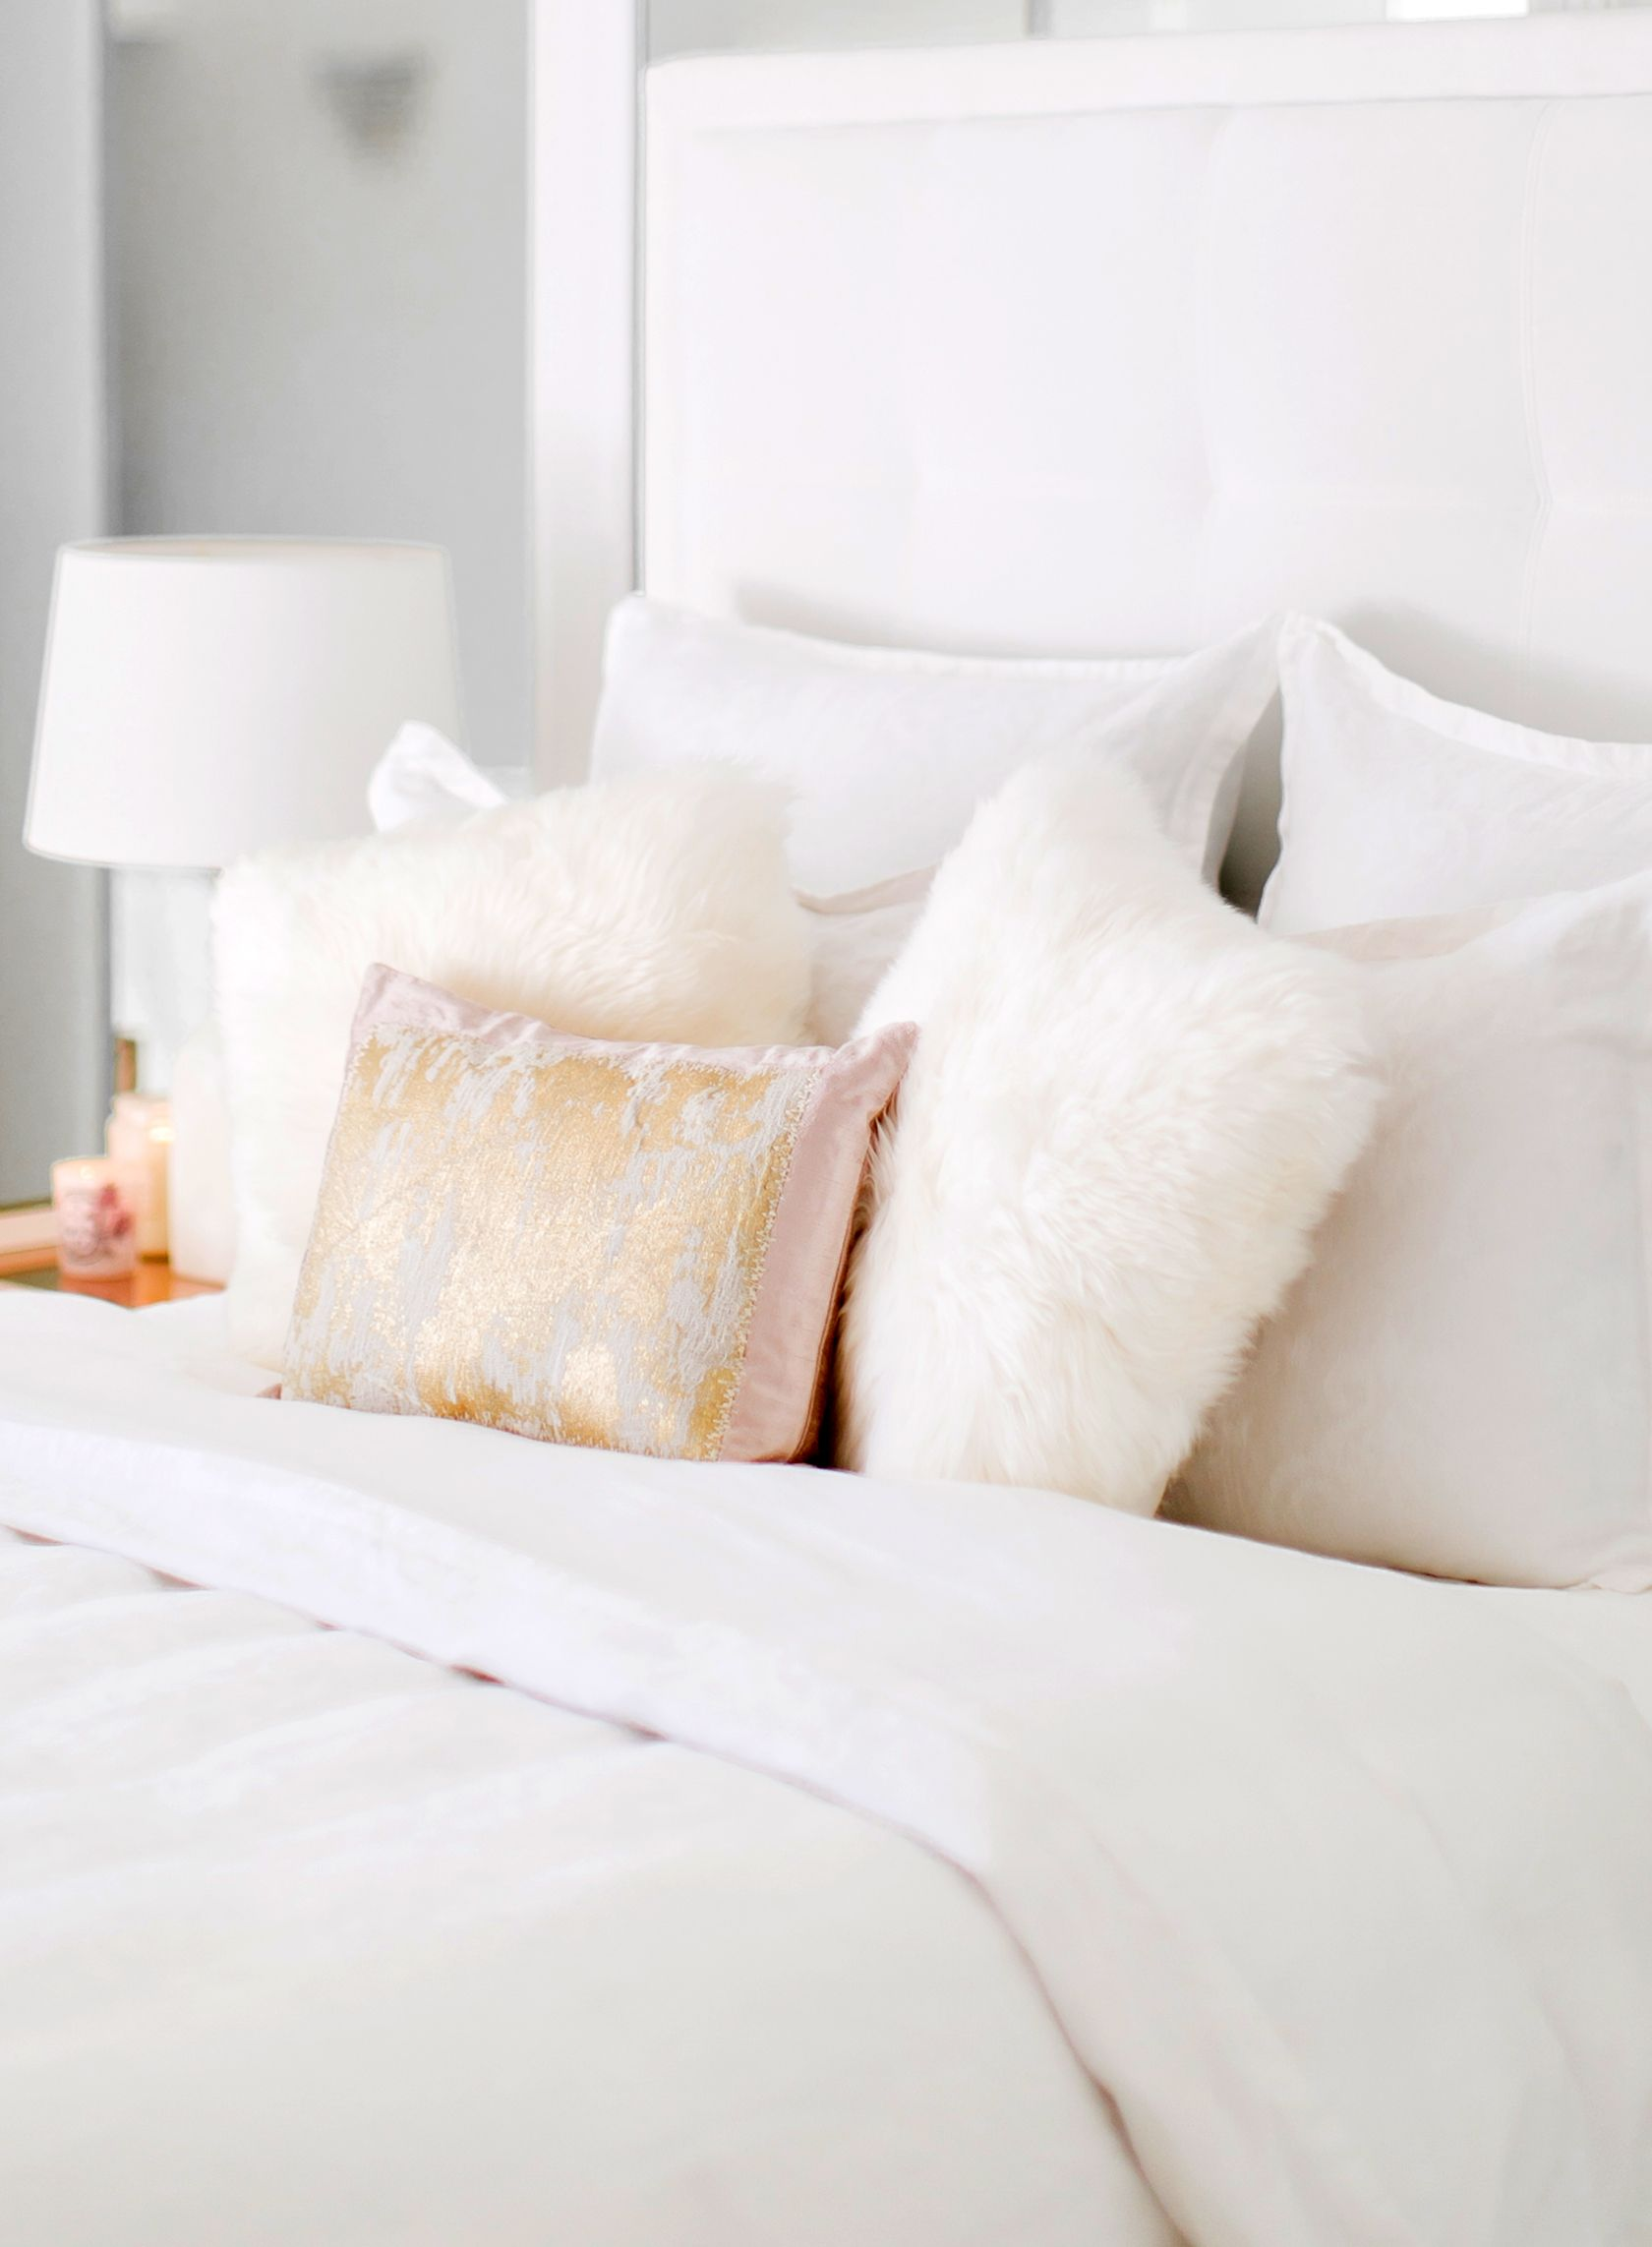 Bedroom Decor Ideas Pillow Decorative Bedroom White Decorative